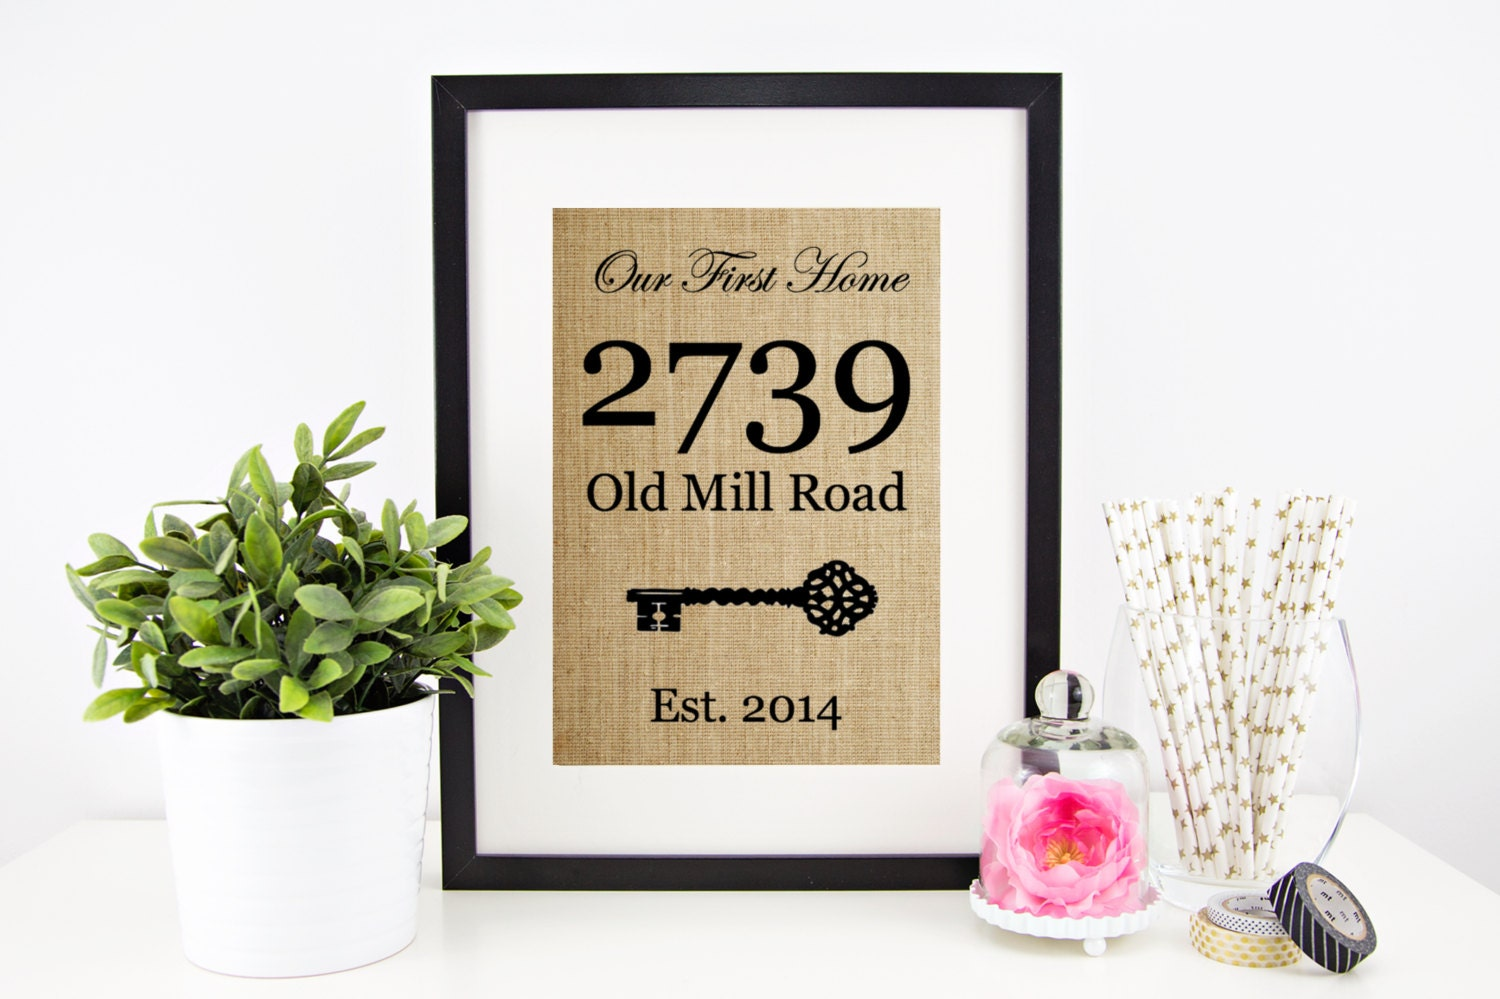 marvelous office gifts for her 26 warming gift ideas zoom ideas a office warming gifts24 office